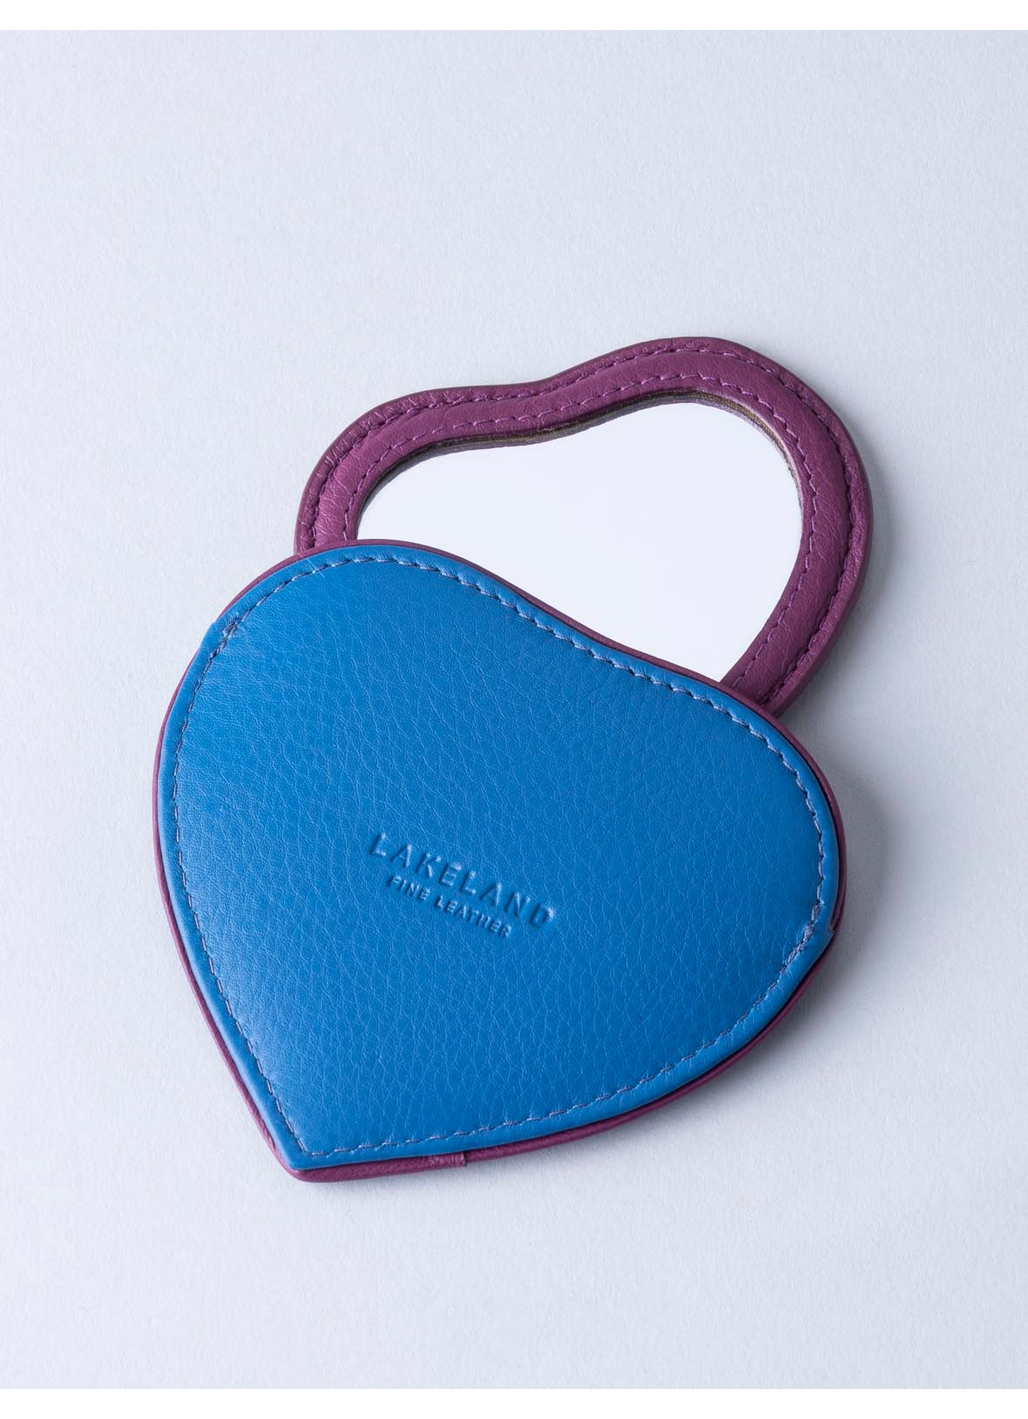 Leather Heart Compact Mirror in Blue & Pink